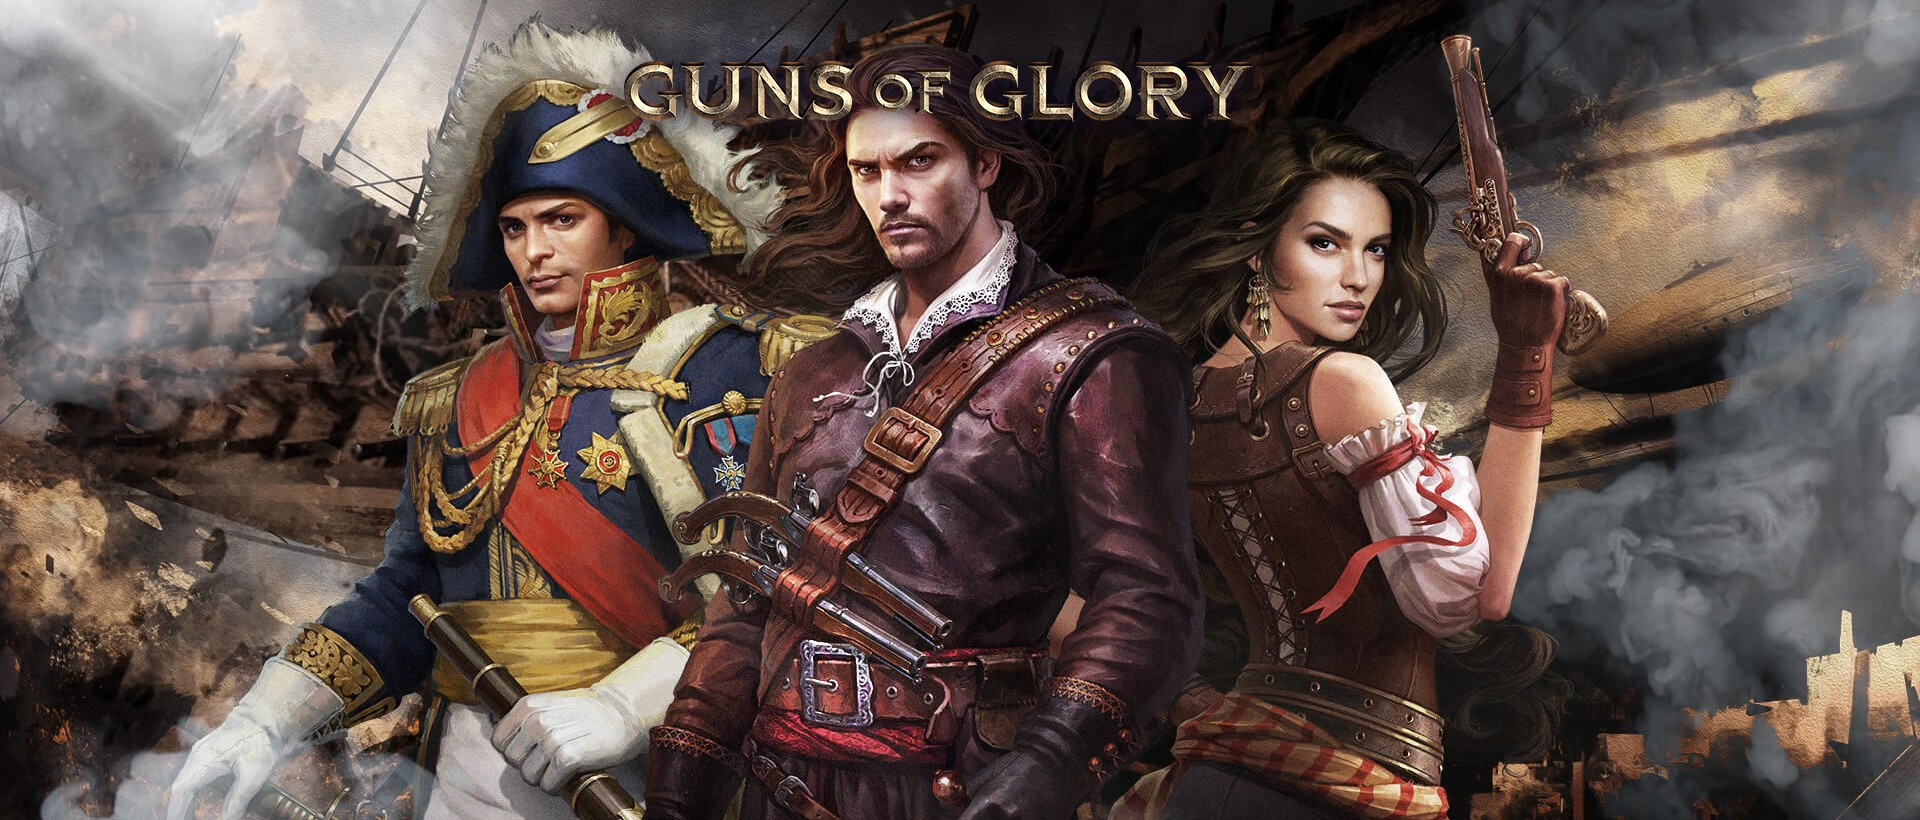 Download Guns of Glory on PC with NoxPlayer-Appcenter